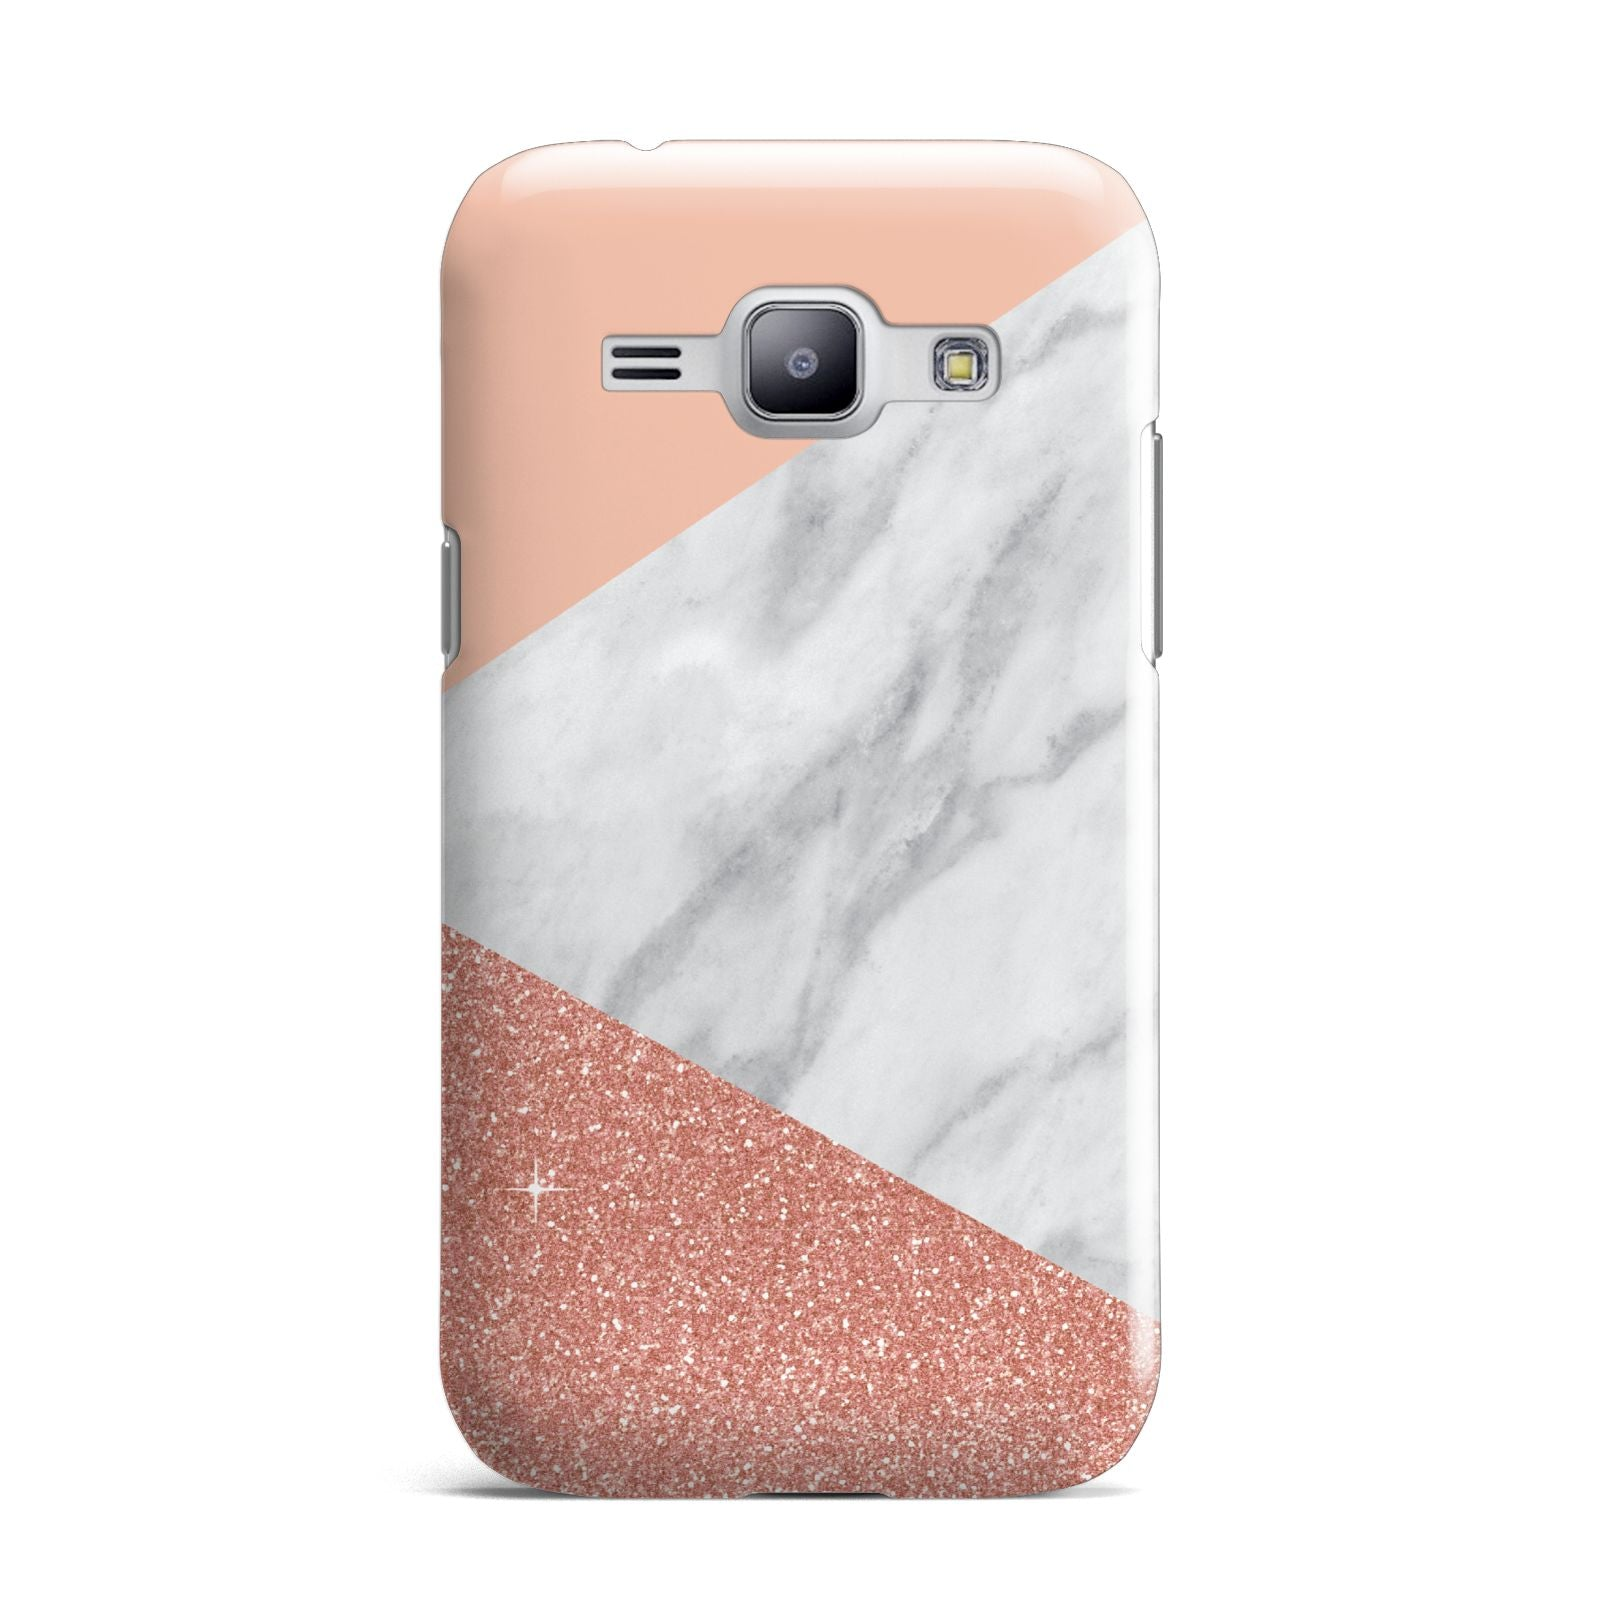 Marble White Rose Gold Samsung Galaxy J1 2015 Case